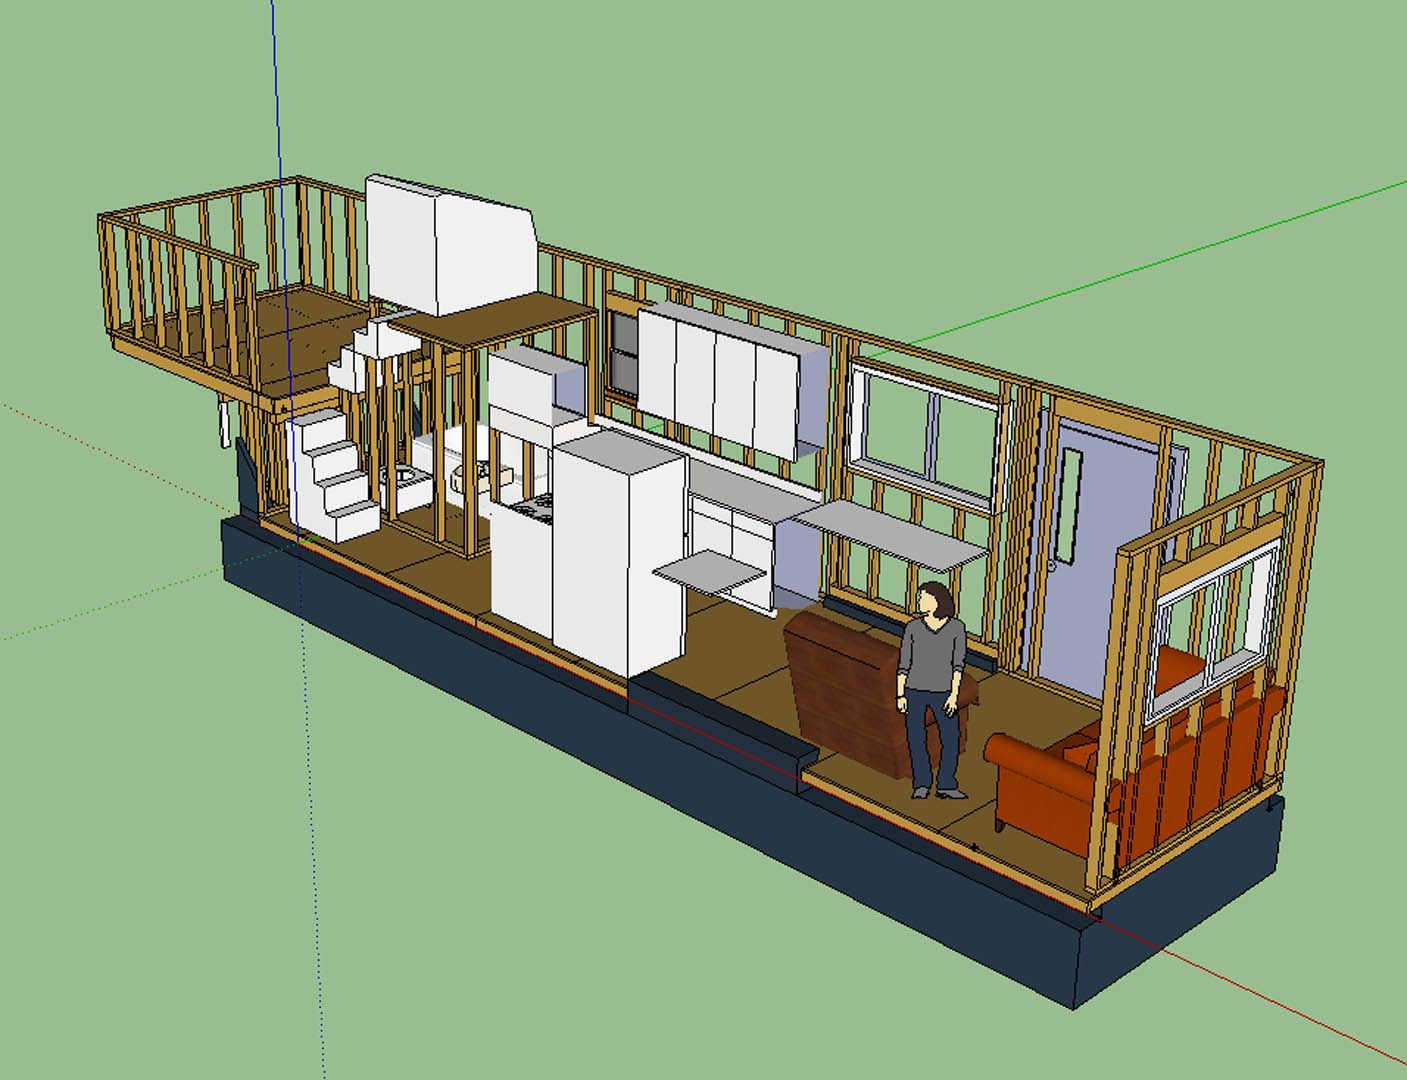 Tiny House On Wheels Plans tiny project tiny house construction plans Tiny House Layout Has Master Bedroom Over Fifth Wheel Hitch With Stairs Up To